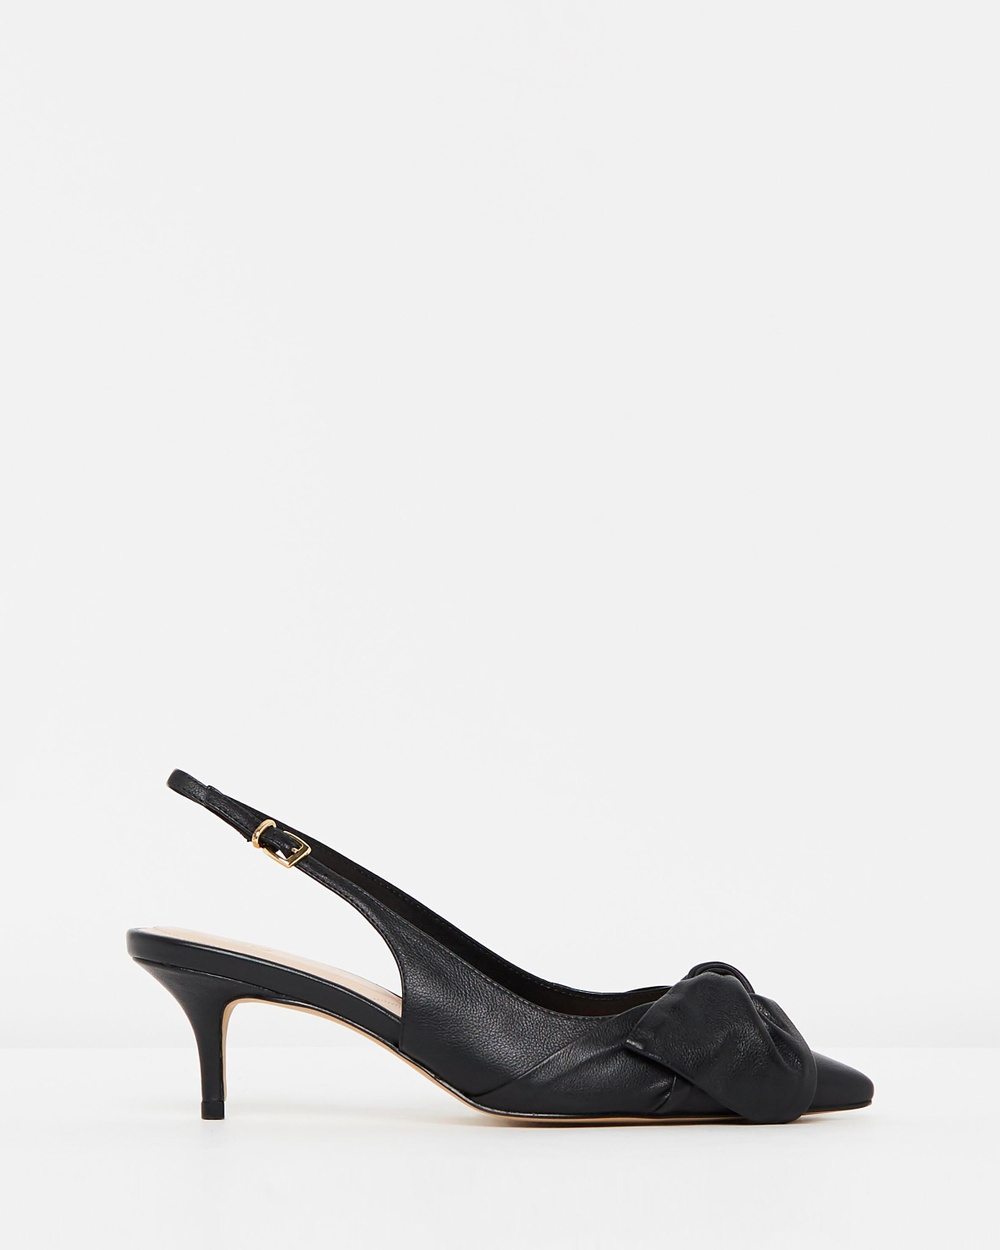 ALDO Davangus Mid-low heels Black Leather Davangus